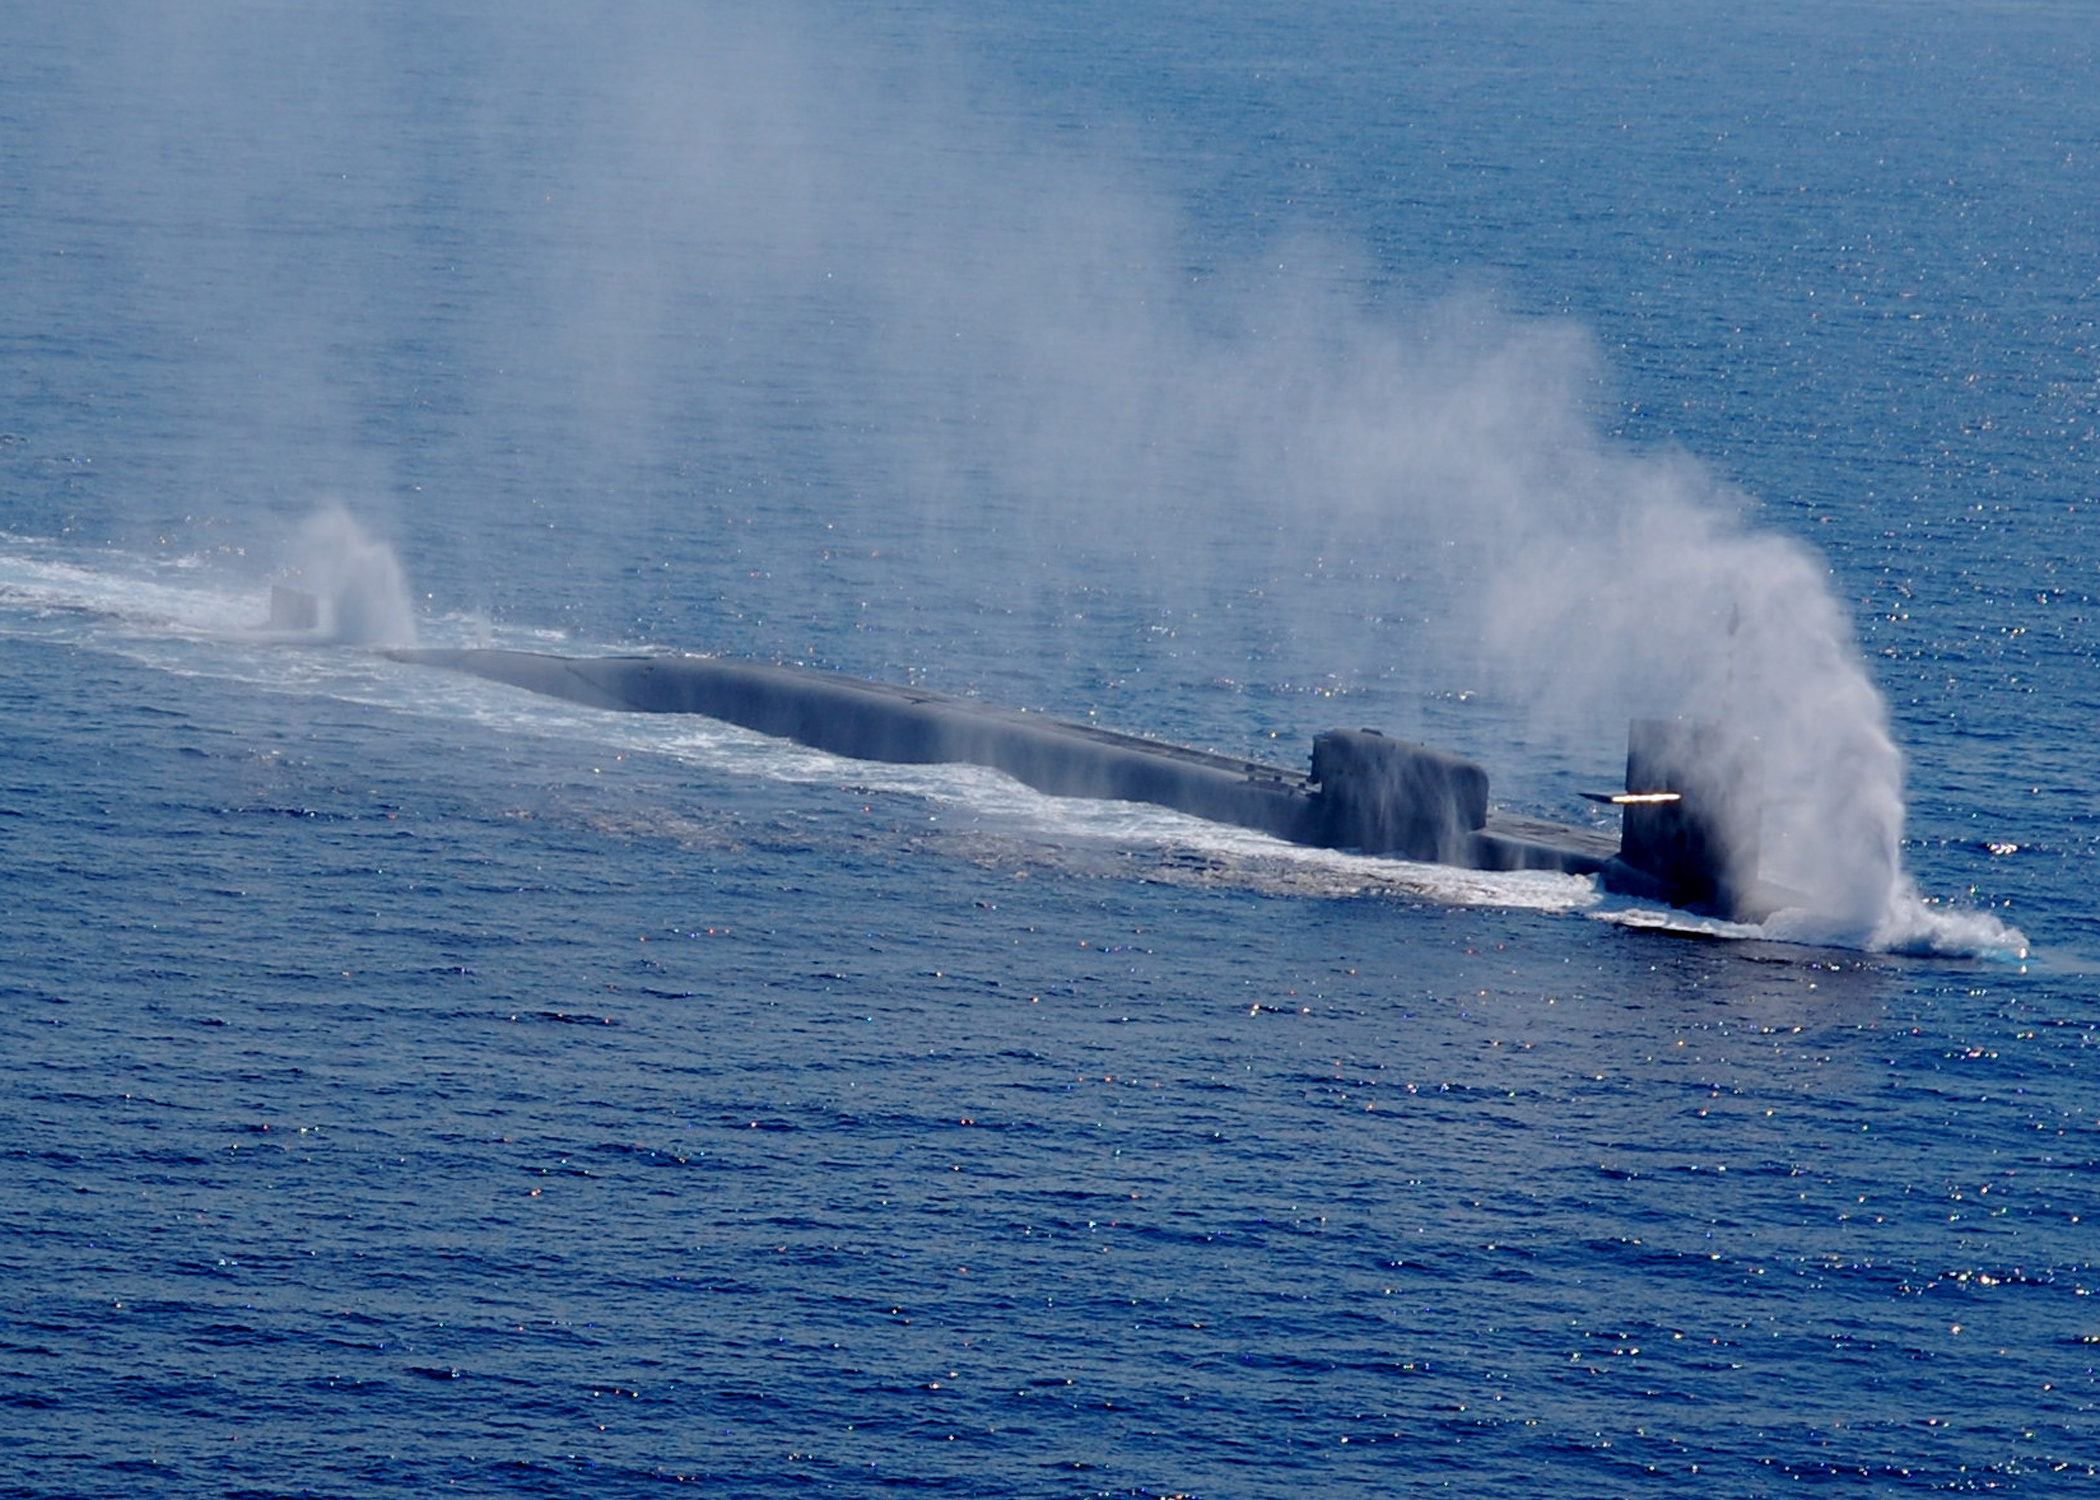 http://upload.wikimedia.org/wikipedia/commons/b/b5/US_Navy_090822-N-2911P-005_The_Ohio-class_guided-missile_submarine_USS_Georgia_%28SSGN_729%29_begins_to_submerge_after_a_port_visit_to_Naples%2C_Italy.jpg